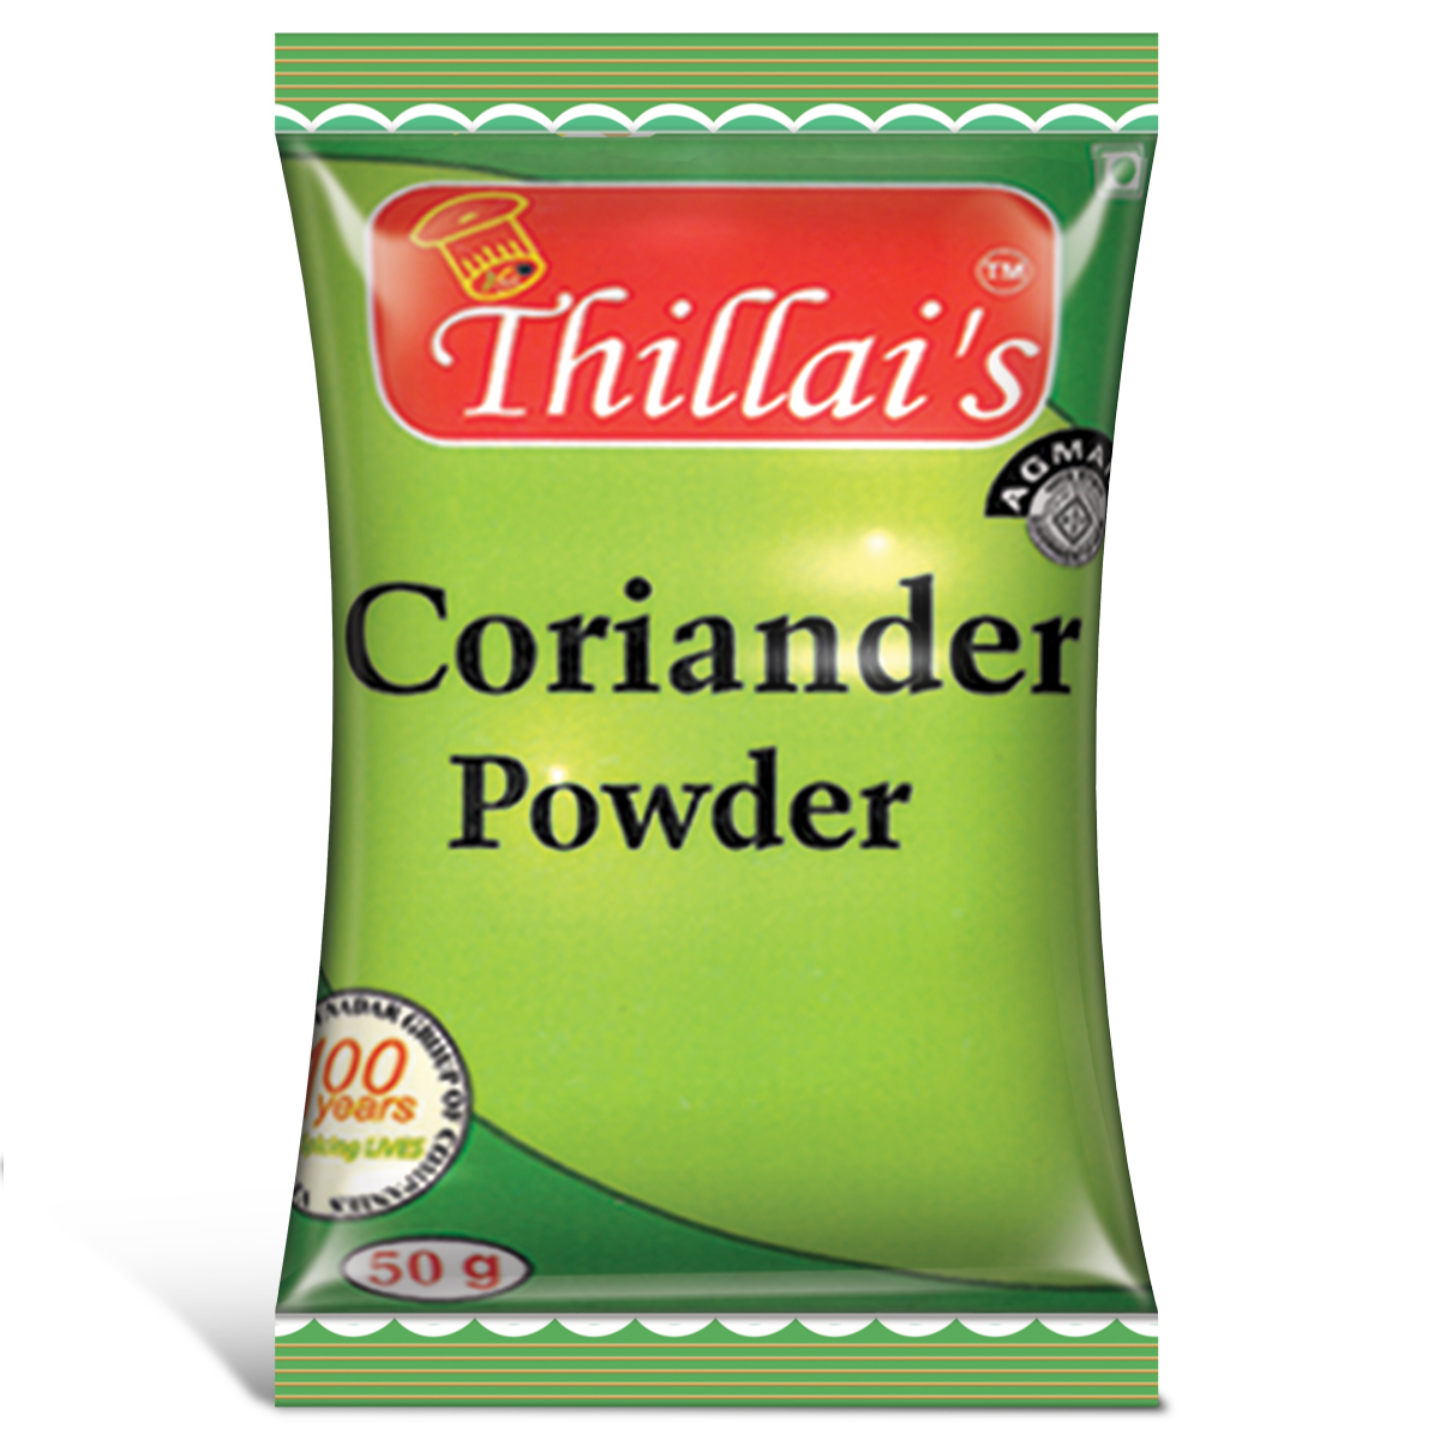 Thillais Coriander powder-50g